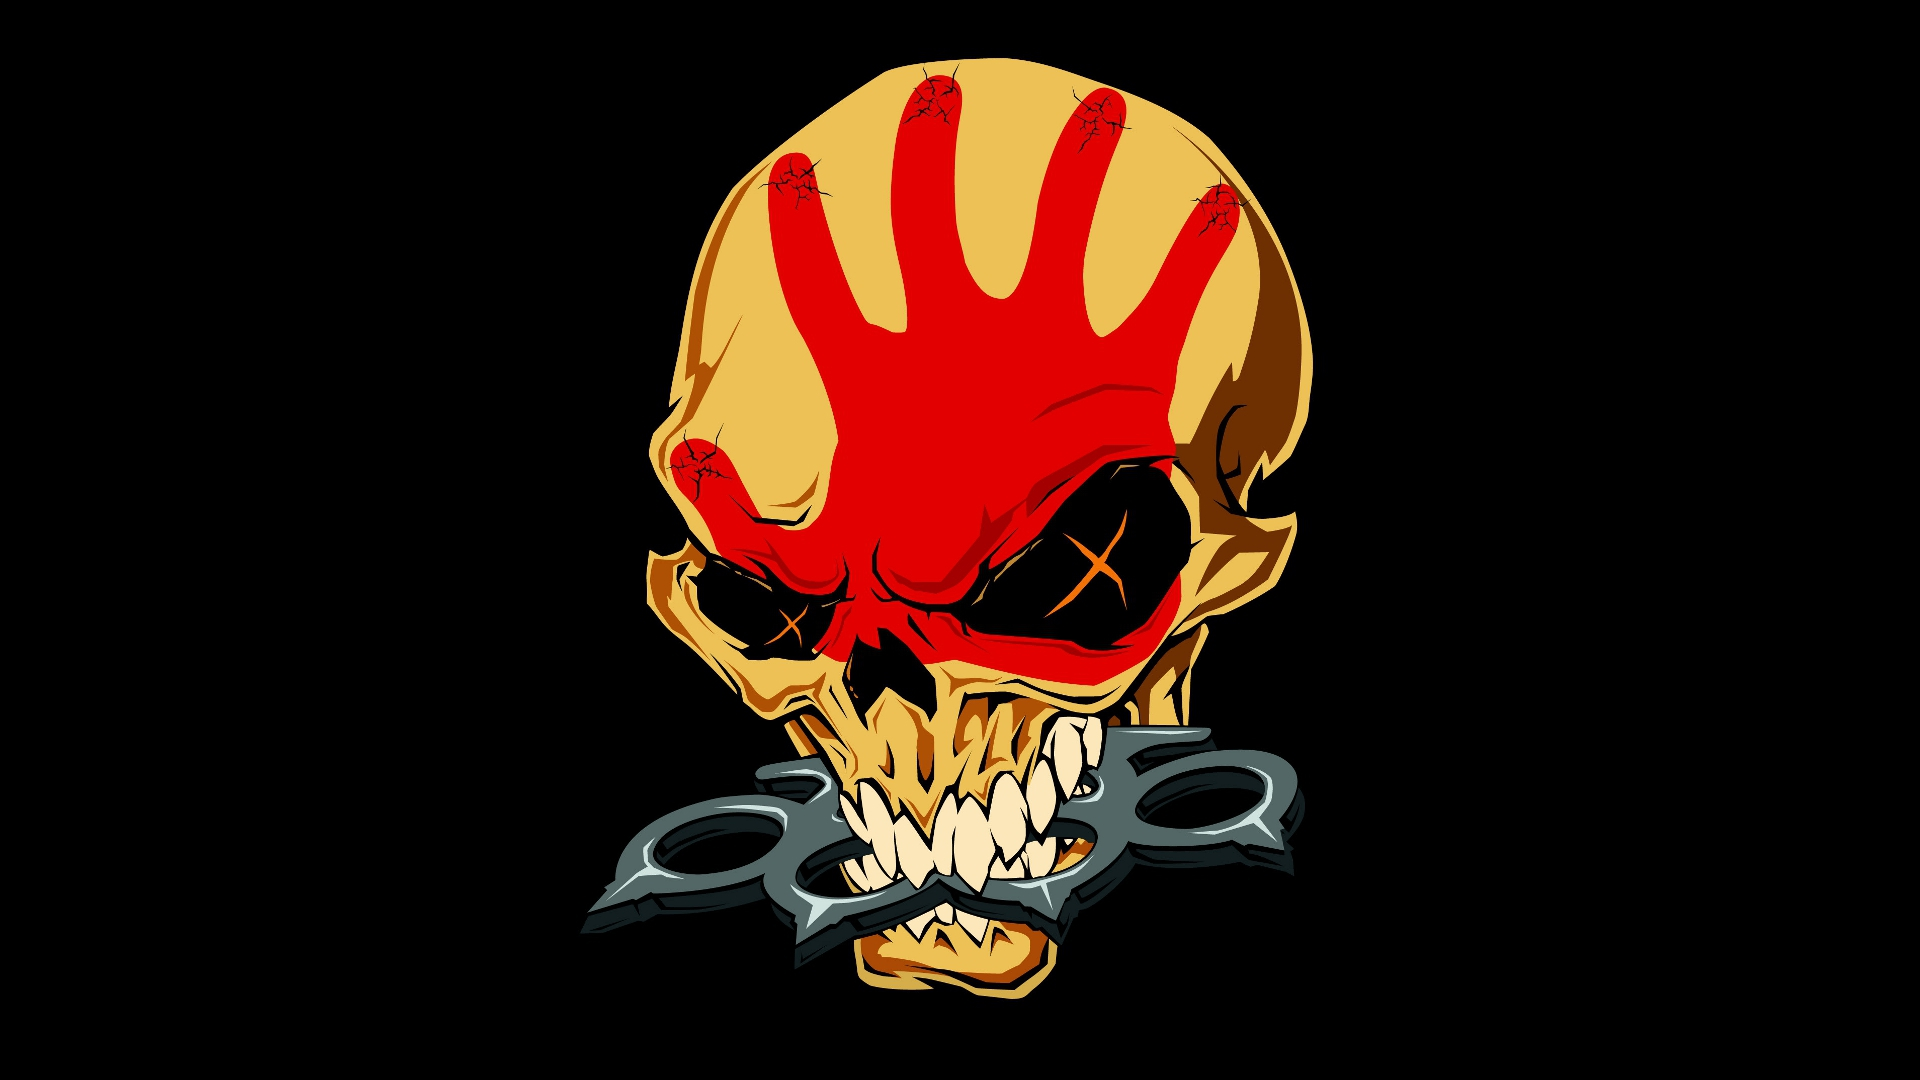 Five Finger Death Punch Full HD Wallpaper and Achtergrond ...